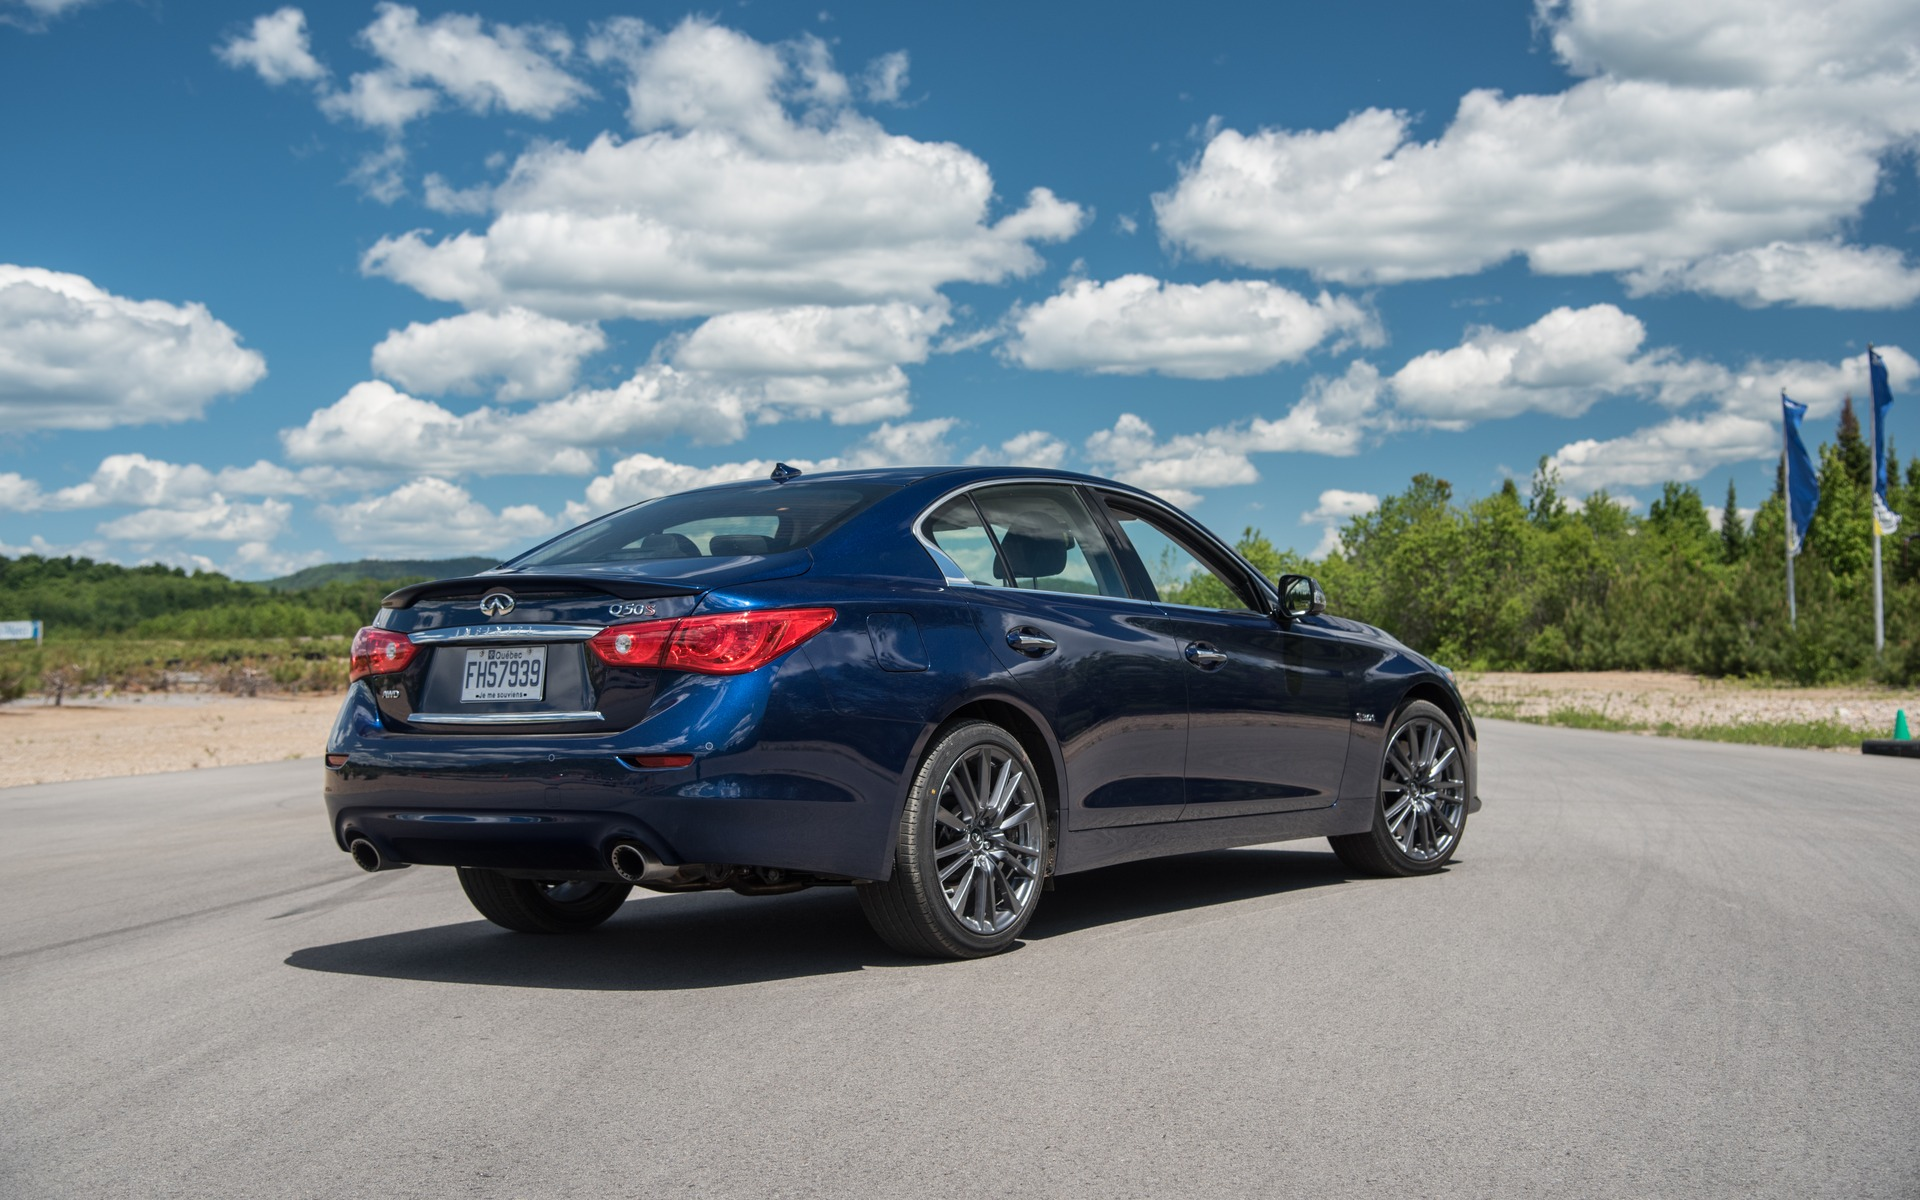 <p>#4: InfinitiQ50 Red Sport | 278.6POINTS | 58 825$</p>